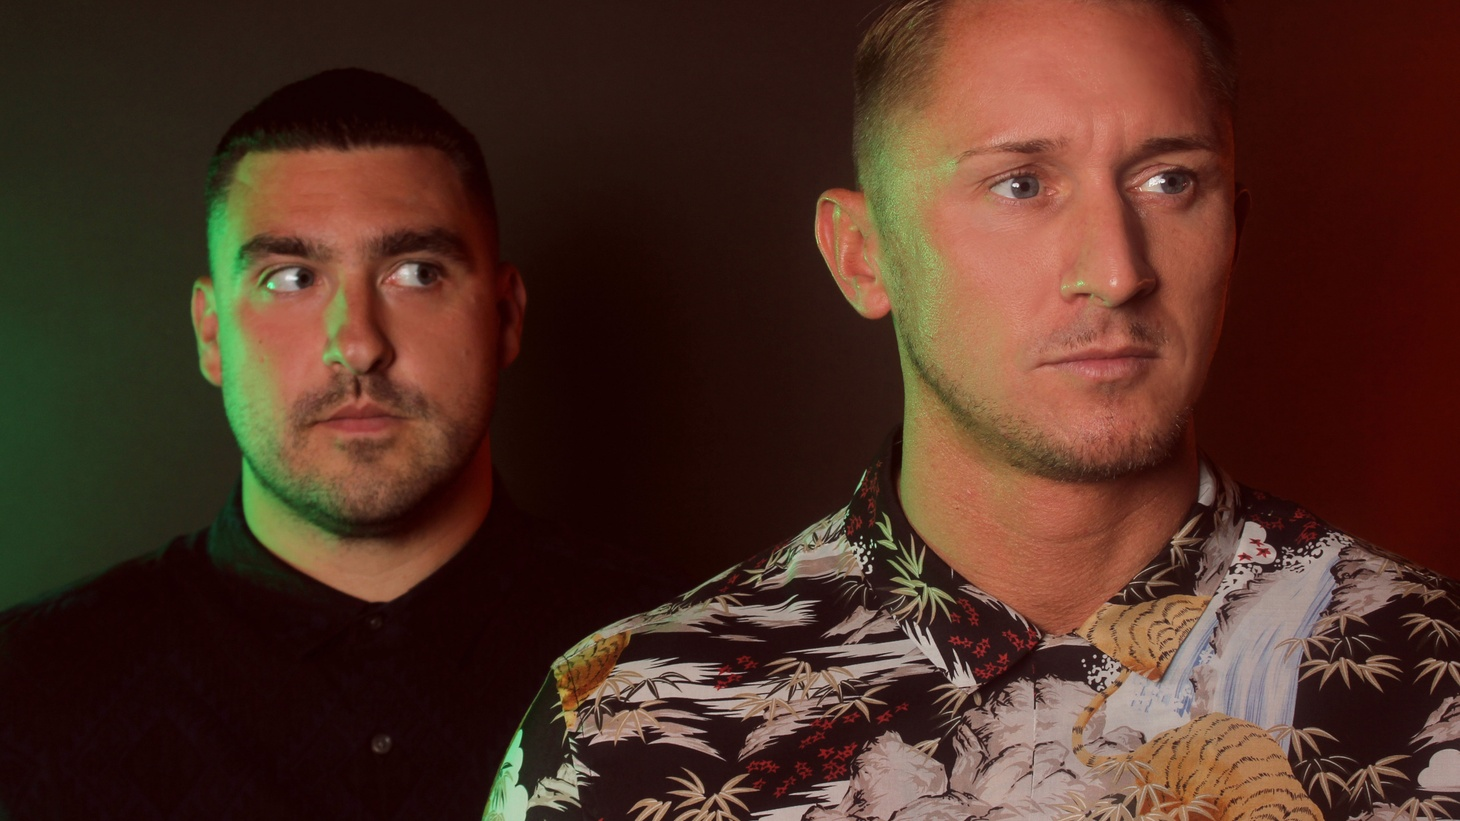 Masked and mysterious UK duo Camelphat, have been killing the game the past few years with their high energy DJ sets. Their production style is emotionally-rich and sub-soaked, with silky-synth vocals. Camelphat present us with an exclusive mix for Metropolis.